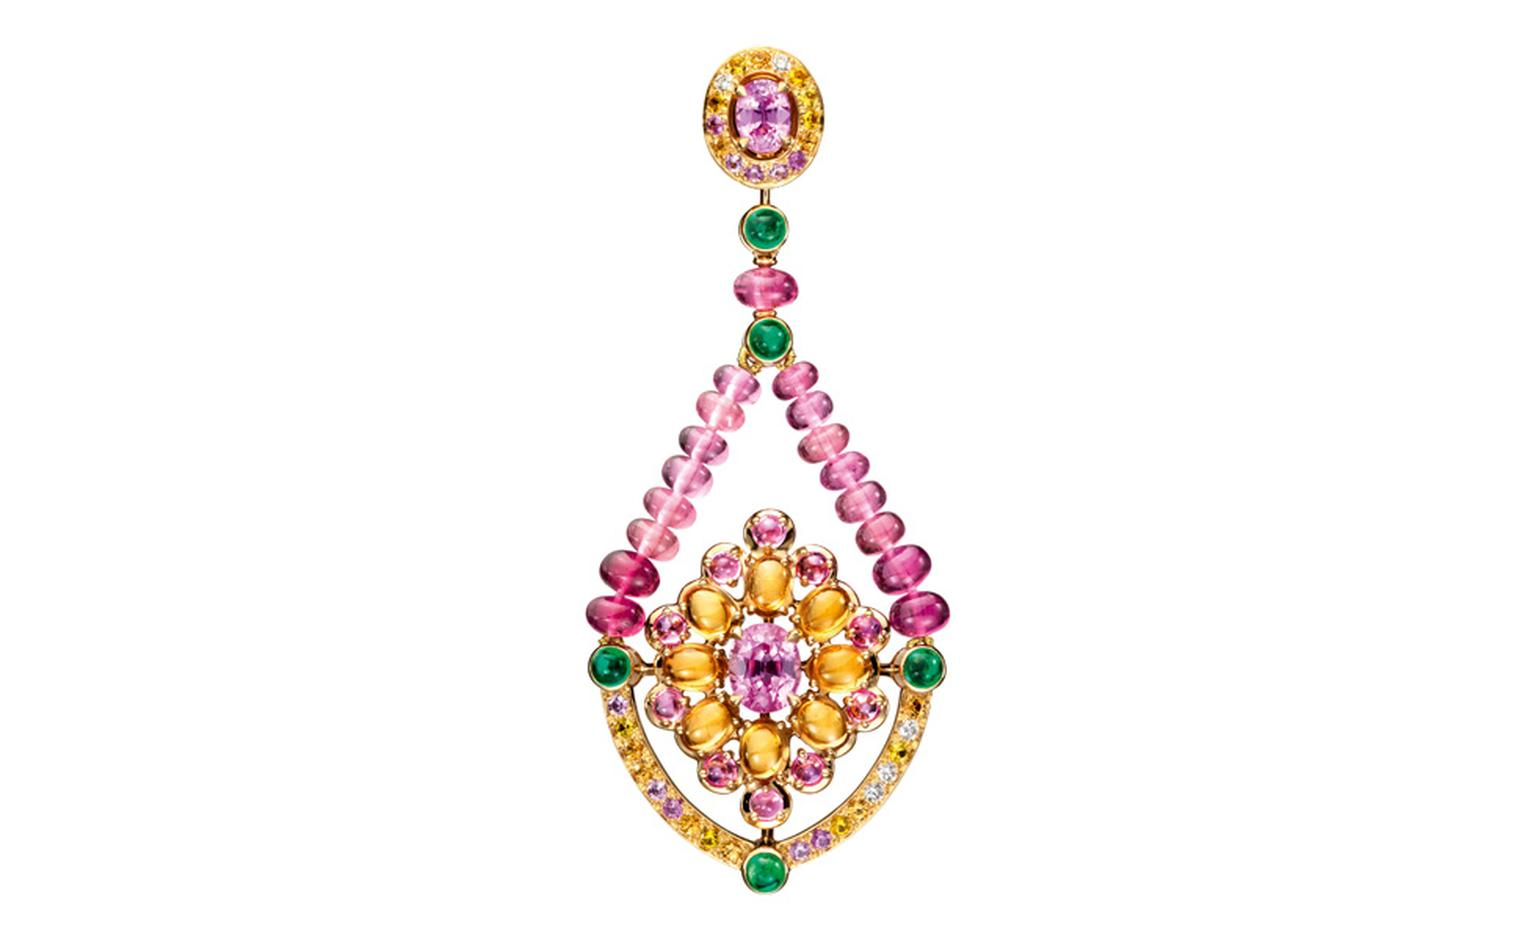 Boucheron Isola Bella earrings, set with pink oval sapphires, paved with orange, pink and yellow sapphires and diamonds, on yellow gold. POA